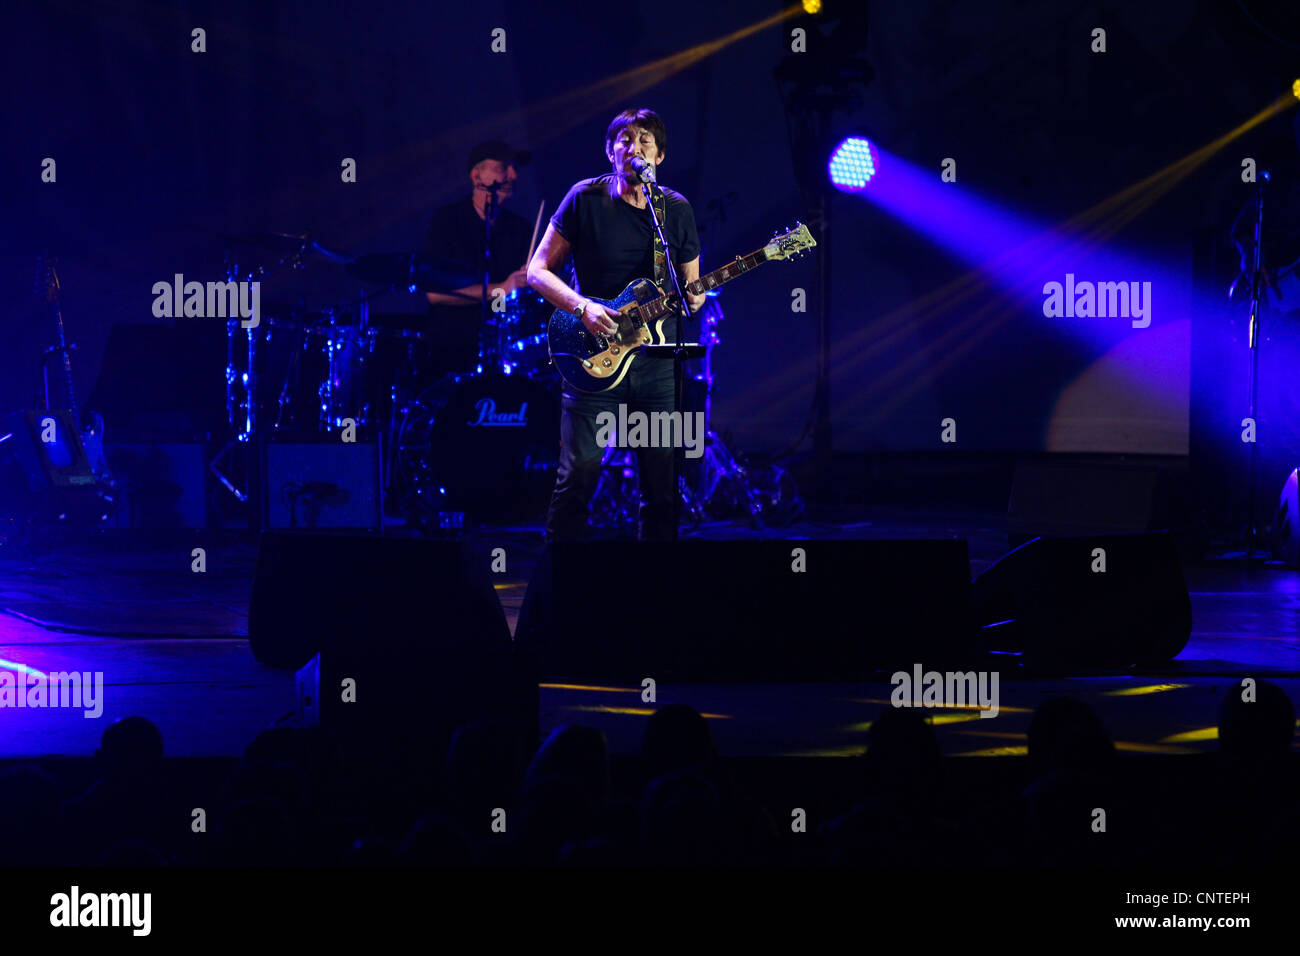 British singer and guitarist, Chris Rea performs at Hammersmith Apollo in London, 05 April 2012. - Stock Image